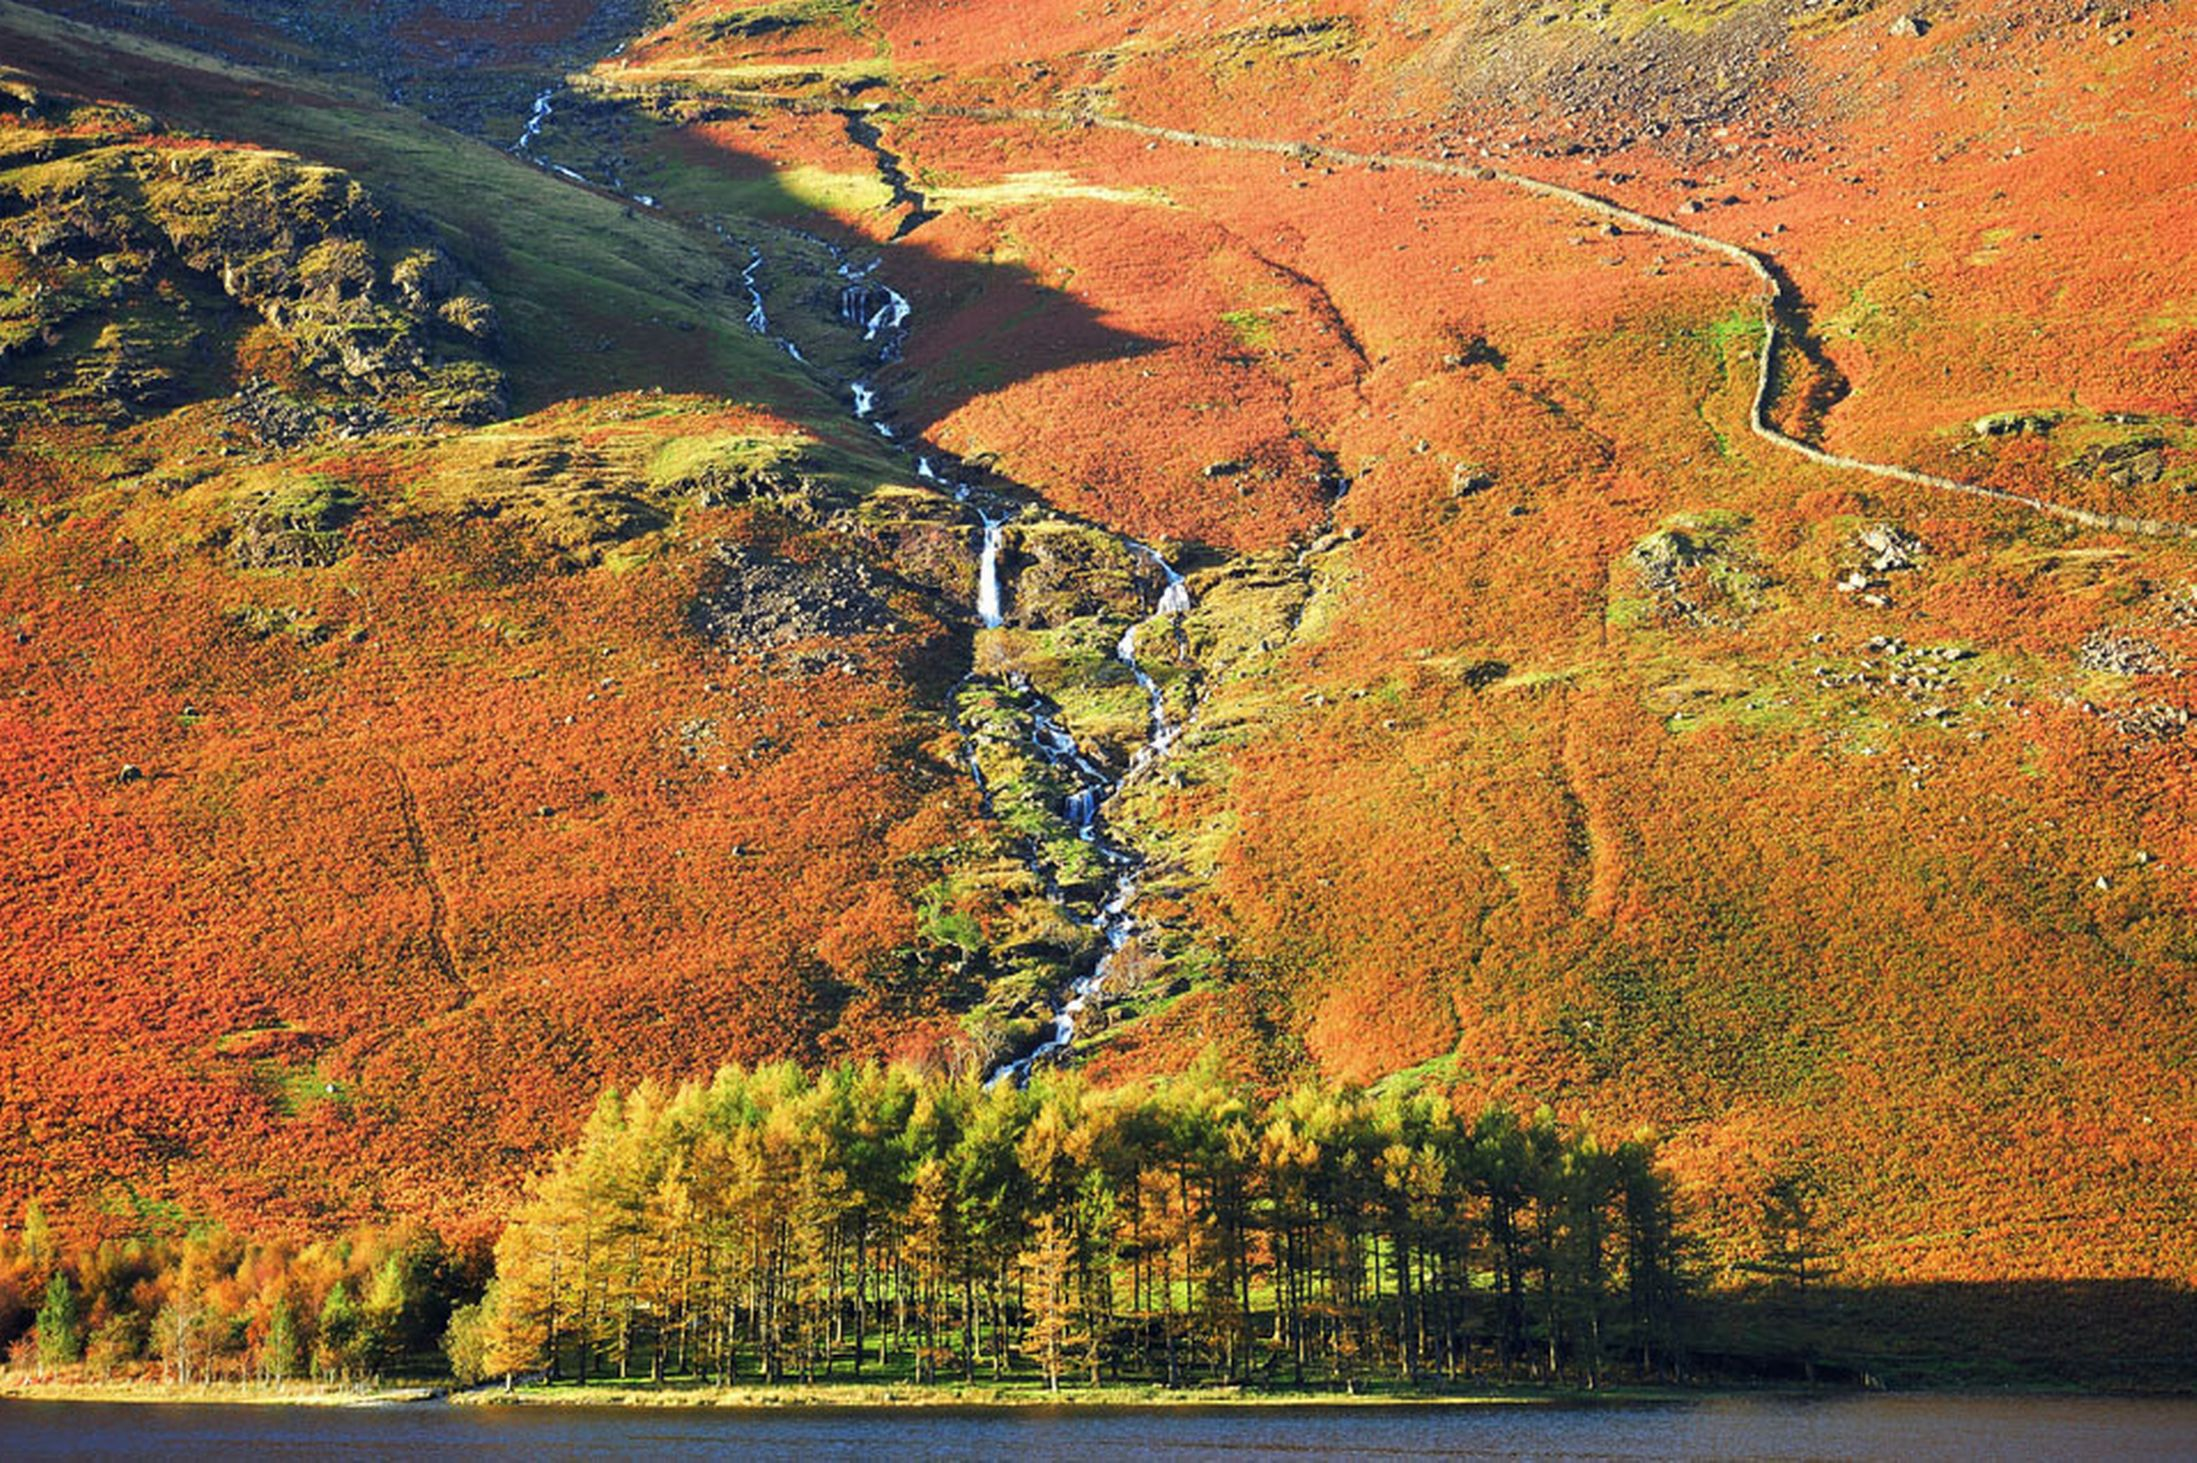 A-waterfall-flows-into-lake-Buttermere-in-Cumbria-24th-October-2641165